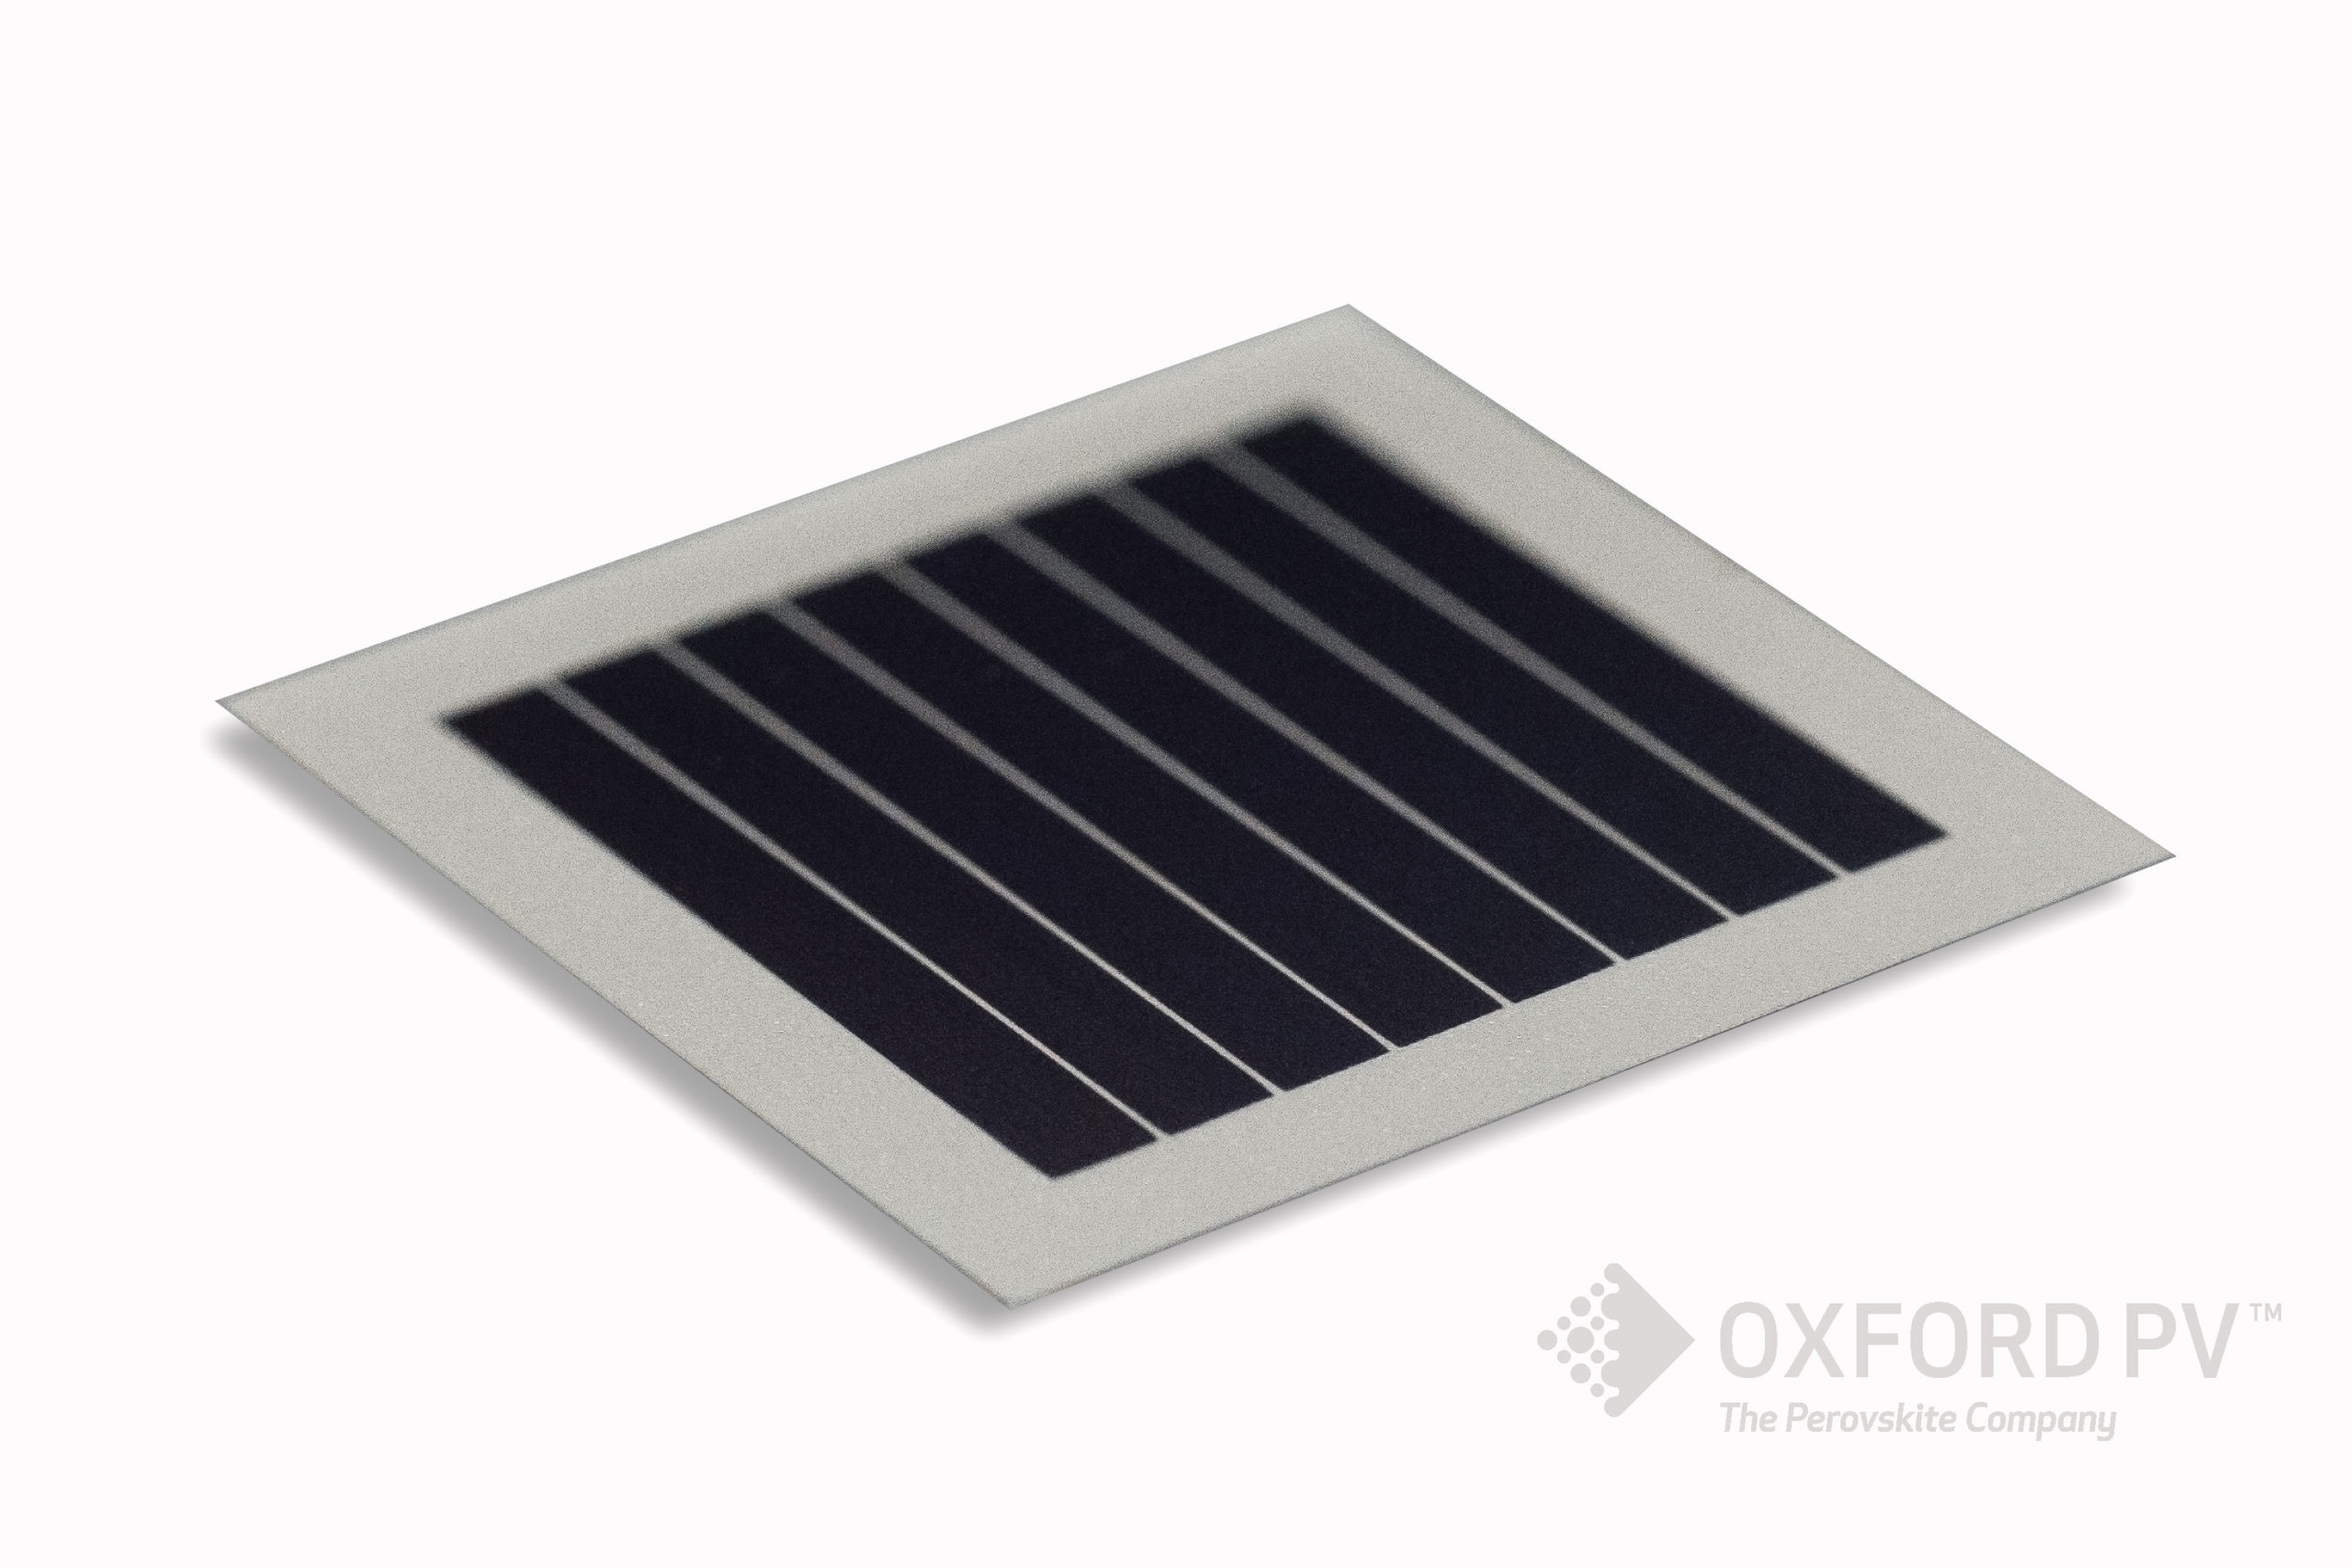 Oxford PV in late December, 2018 indicate that perovskite-silicon tandem cells are rapidly approaching efficiencies of 30% and more when the US National Renewable Energy Laboratory certified Oxford PV's 1 cm2 tandem cell with a 28% conversion efficiency, up from Oxford PV's own previous certified record of 27.3%. Image: Oxford PV